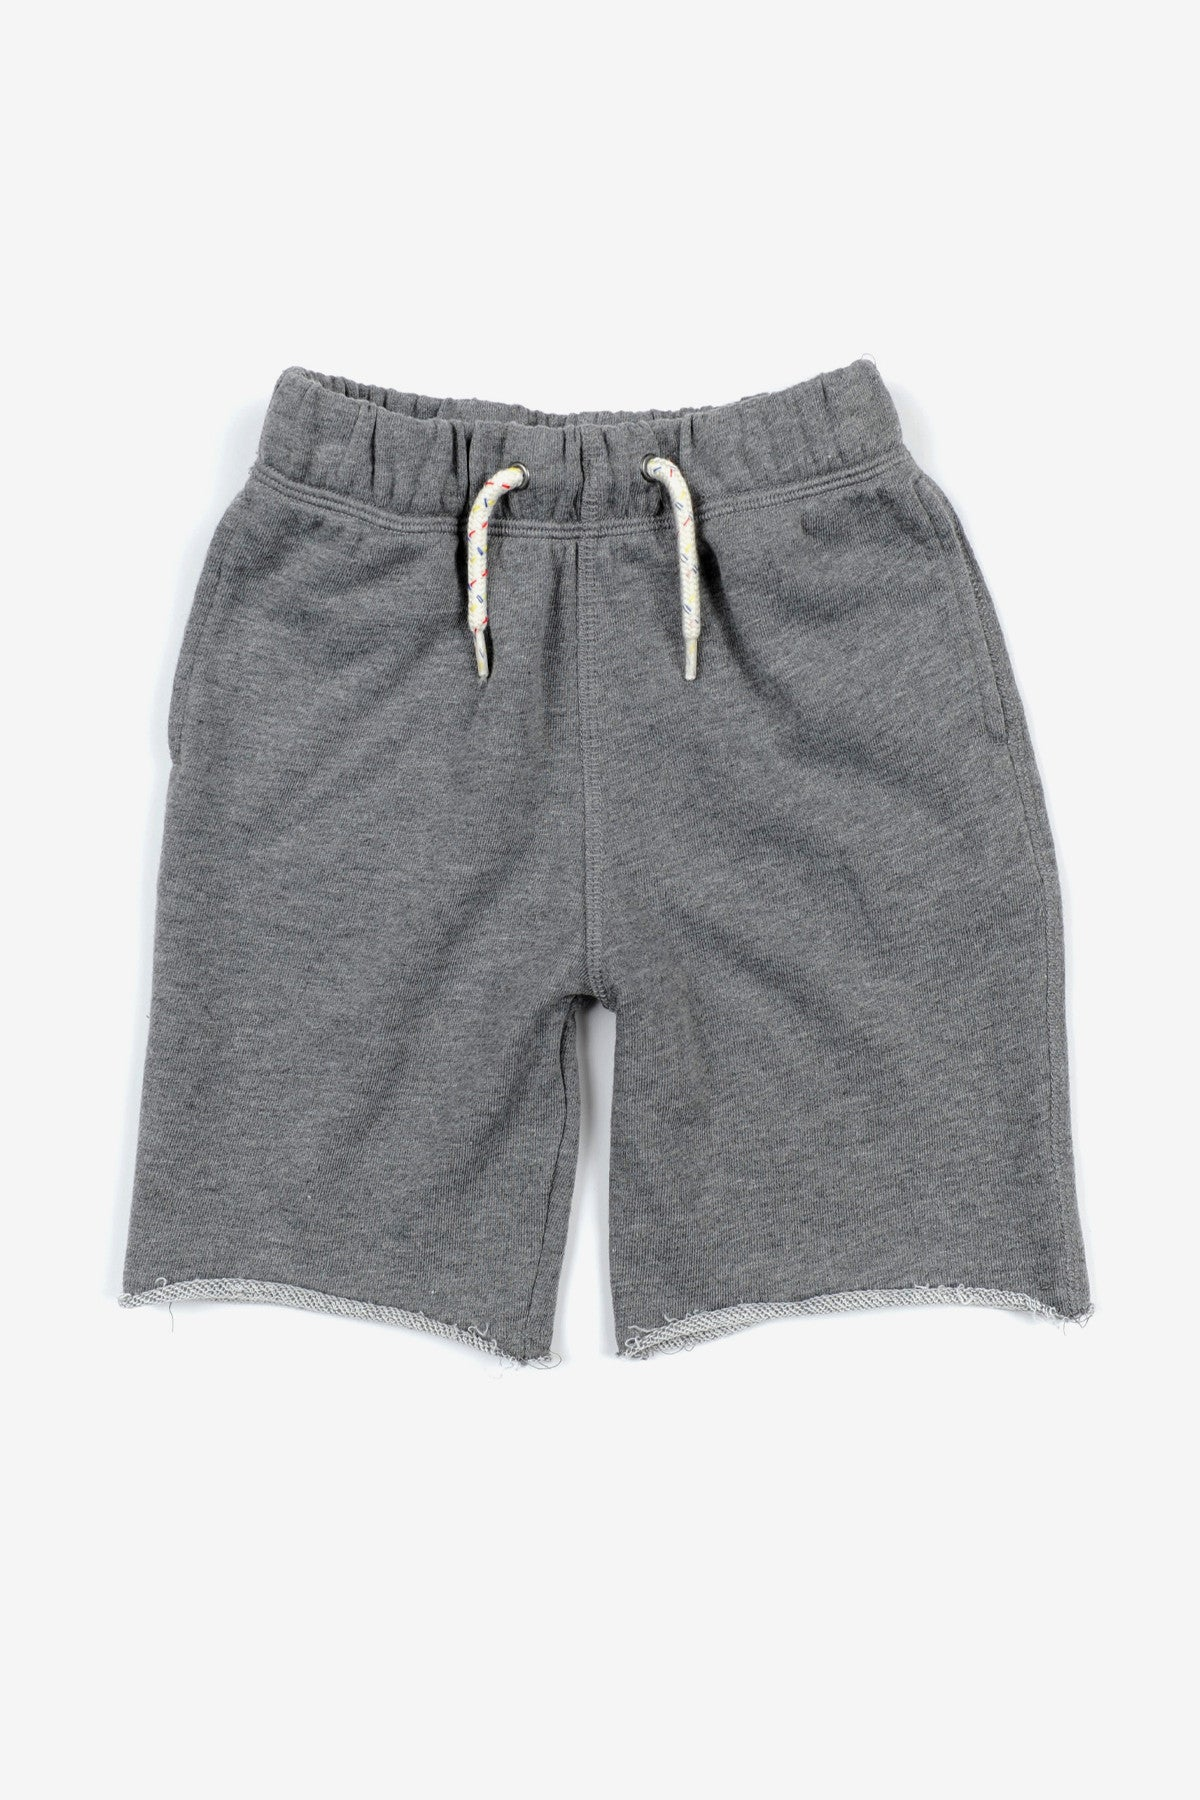 Appaman Camp Boys Shorts - Grey